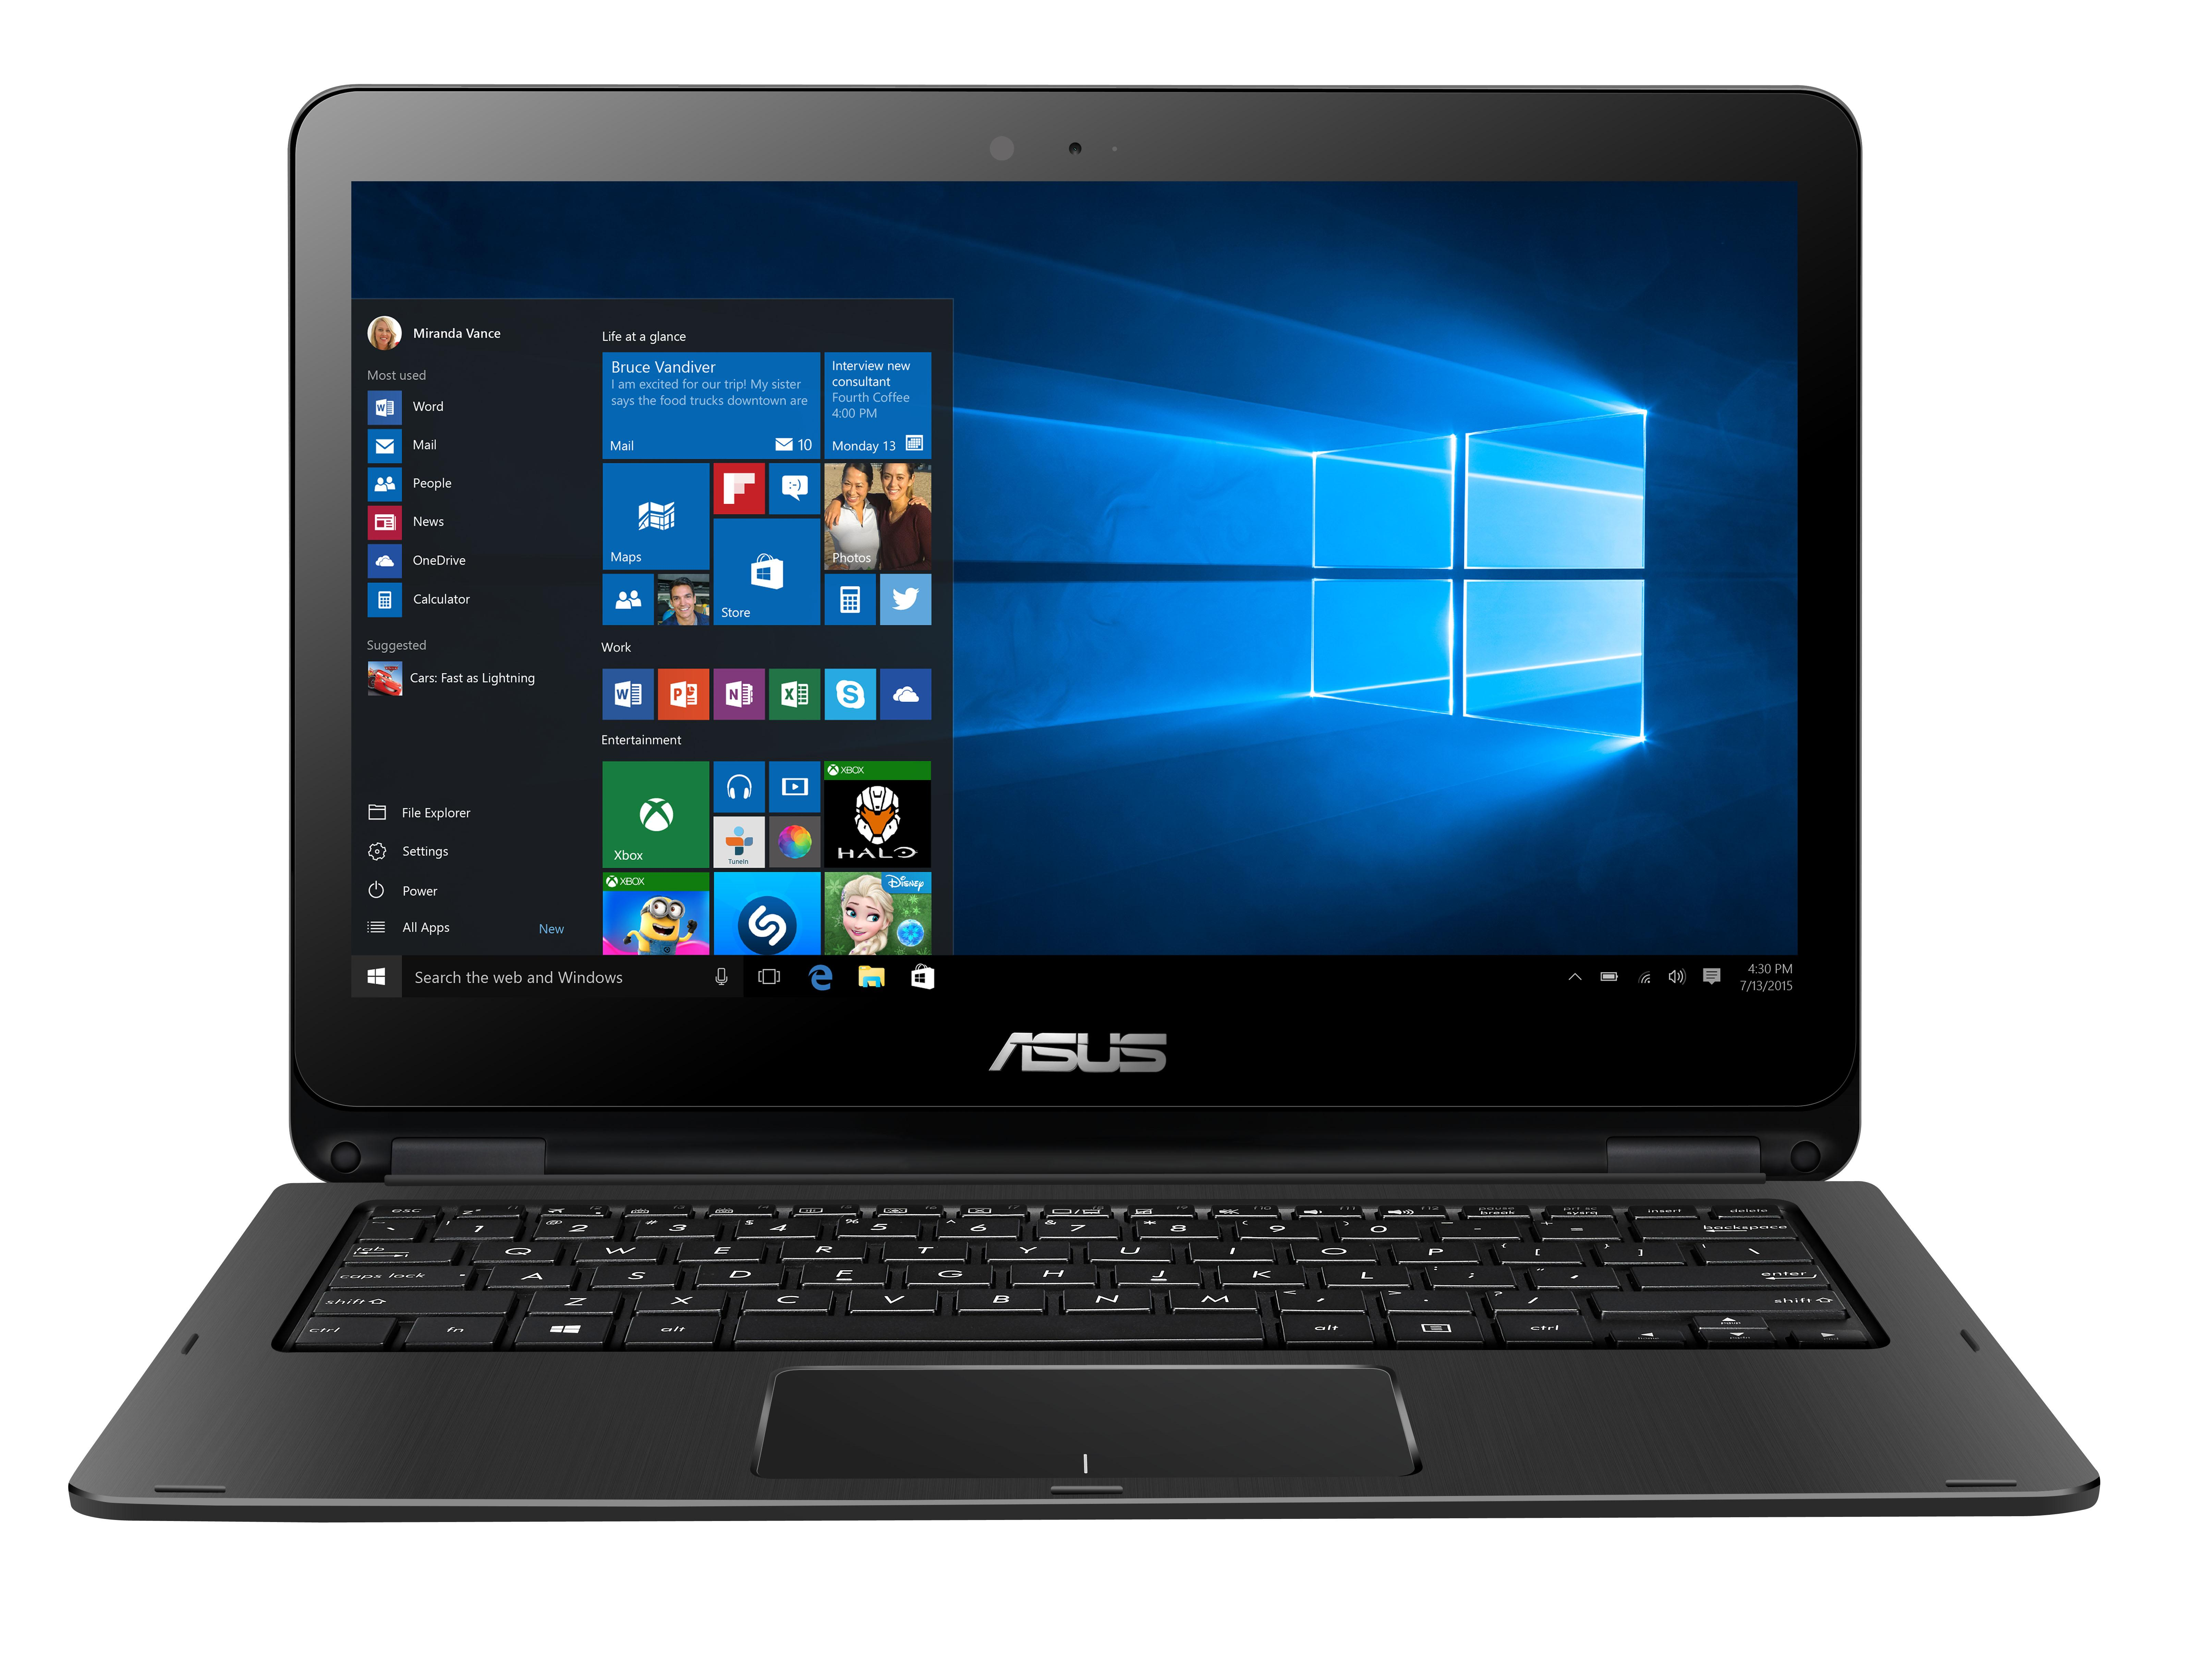 View Asus Flip Core i5 6th Gen - (8 GB/1 TB HDD/Windows 10 Home/2 GB Graphics) C4011T 2 in 1 Laptop(13.3 inch, Black With STraight Hair Line Texture, 1.6 kg) Laptop